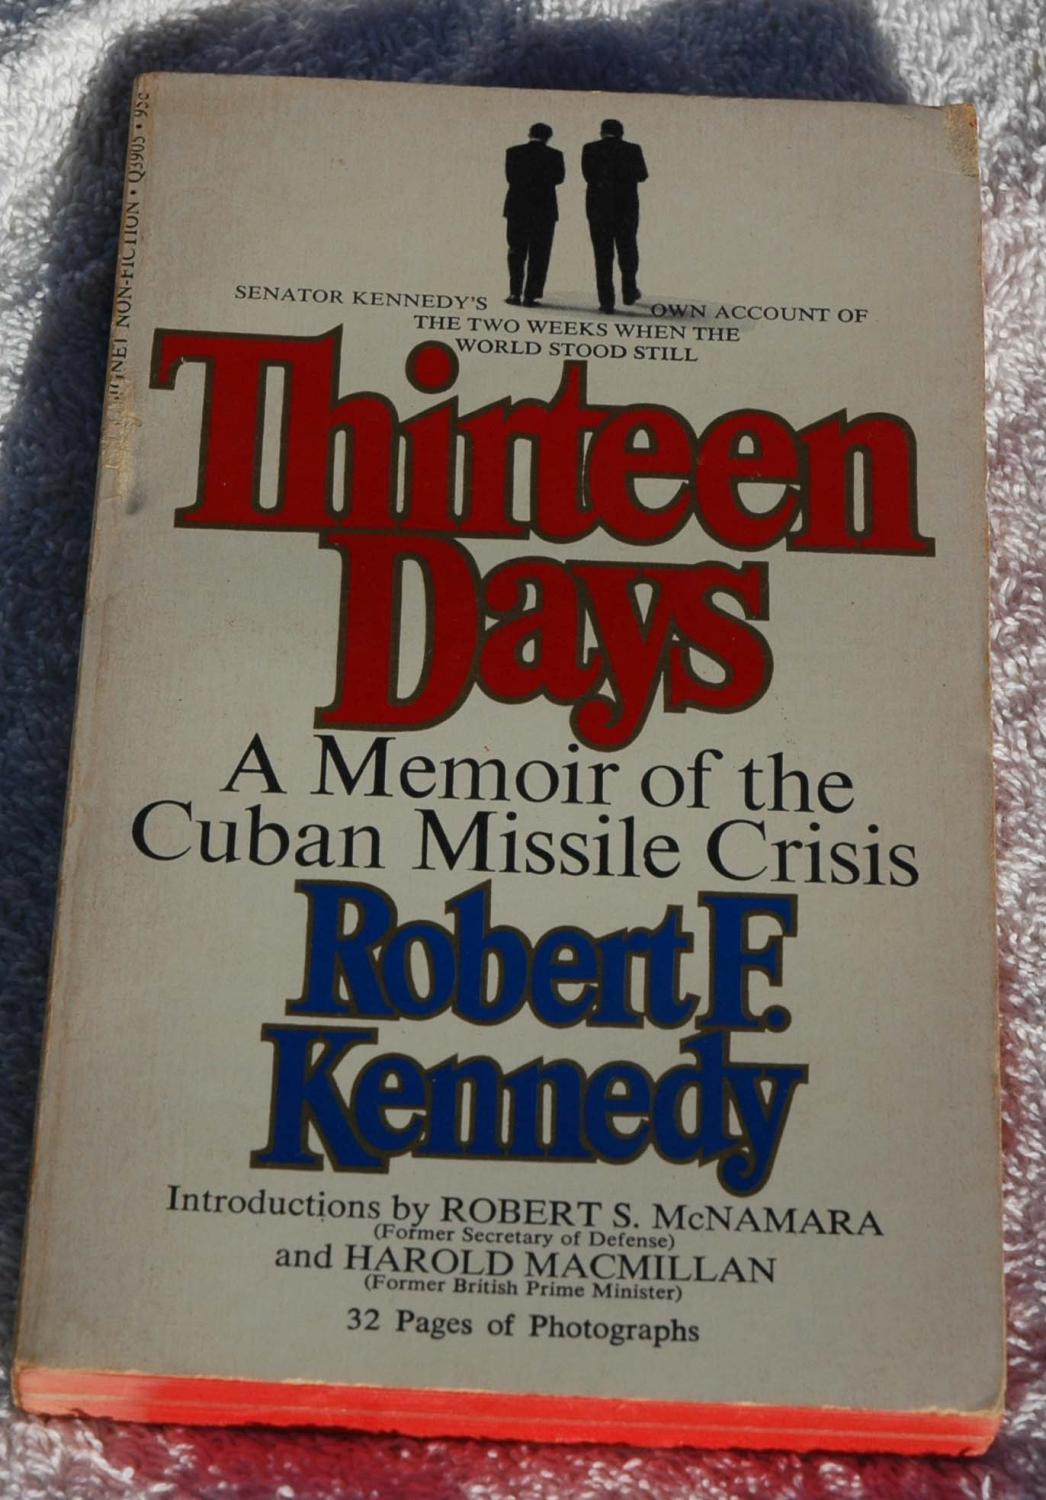 kennedy and the cuban missile crisis essay The cuban missile crisis essaythe cuban missile crisis was a defining event of the cold war  robert kennedy and the cuban missile crisis:.